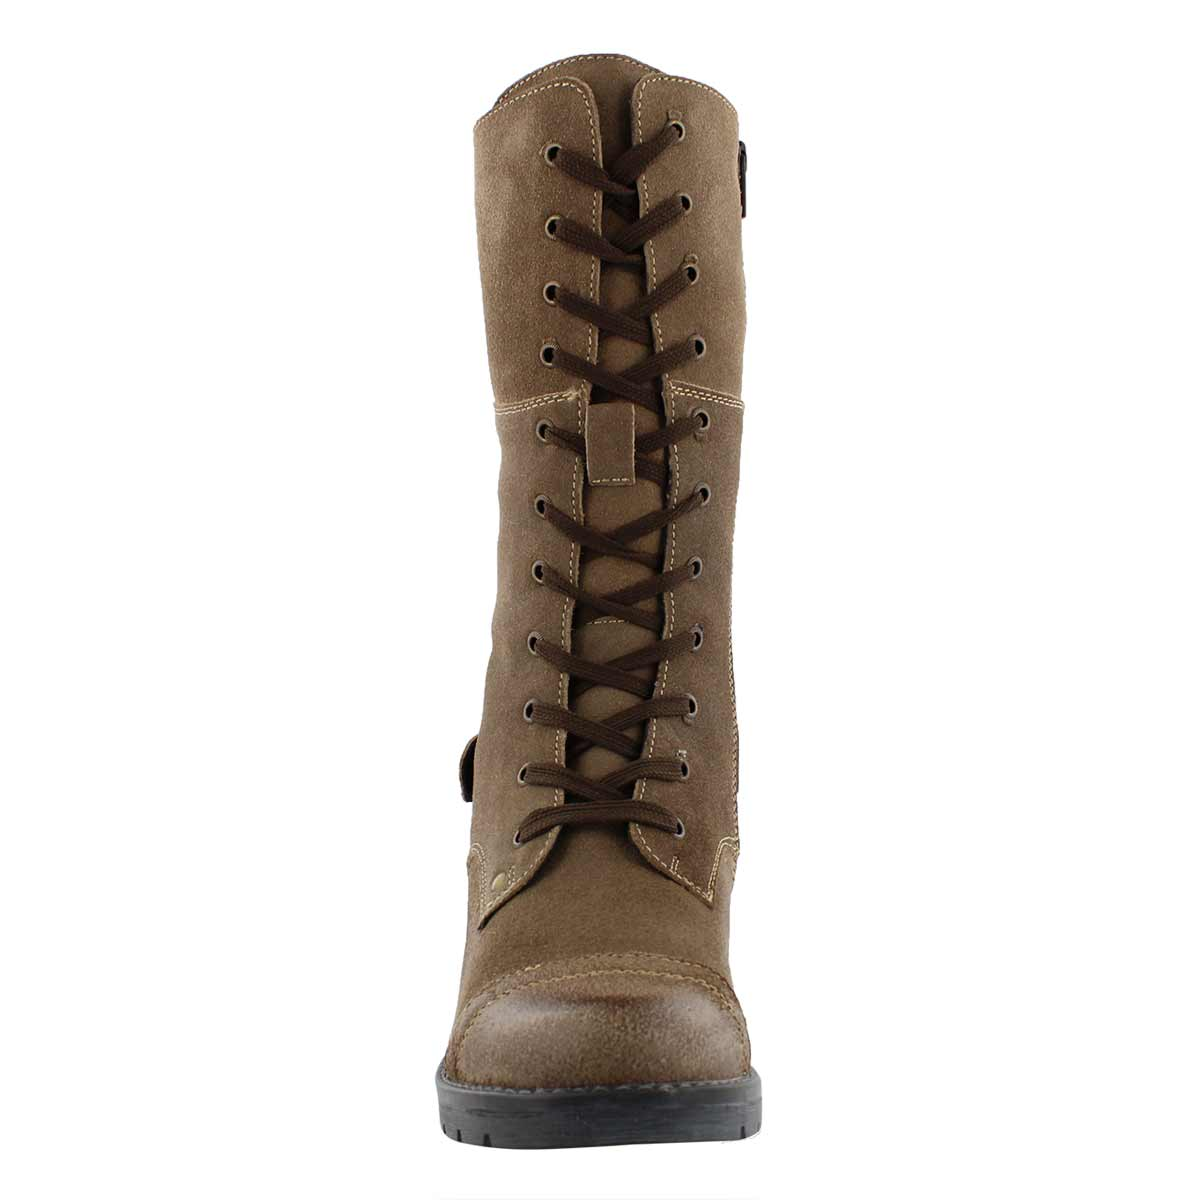 Lds Deedee Tall taupe combat boot